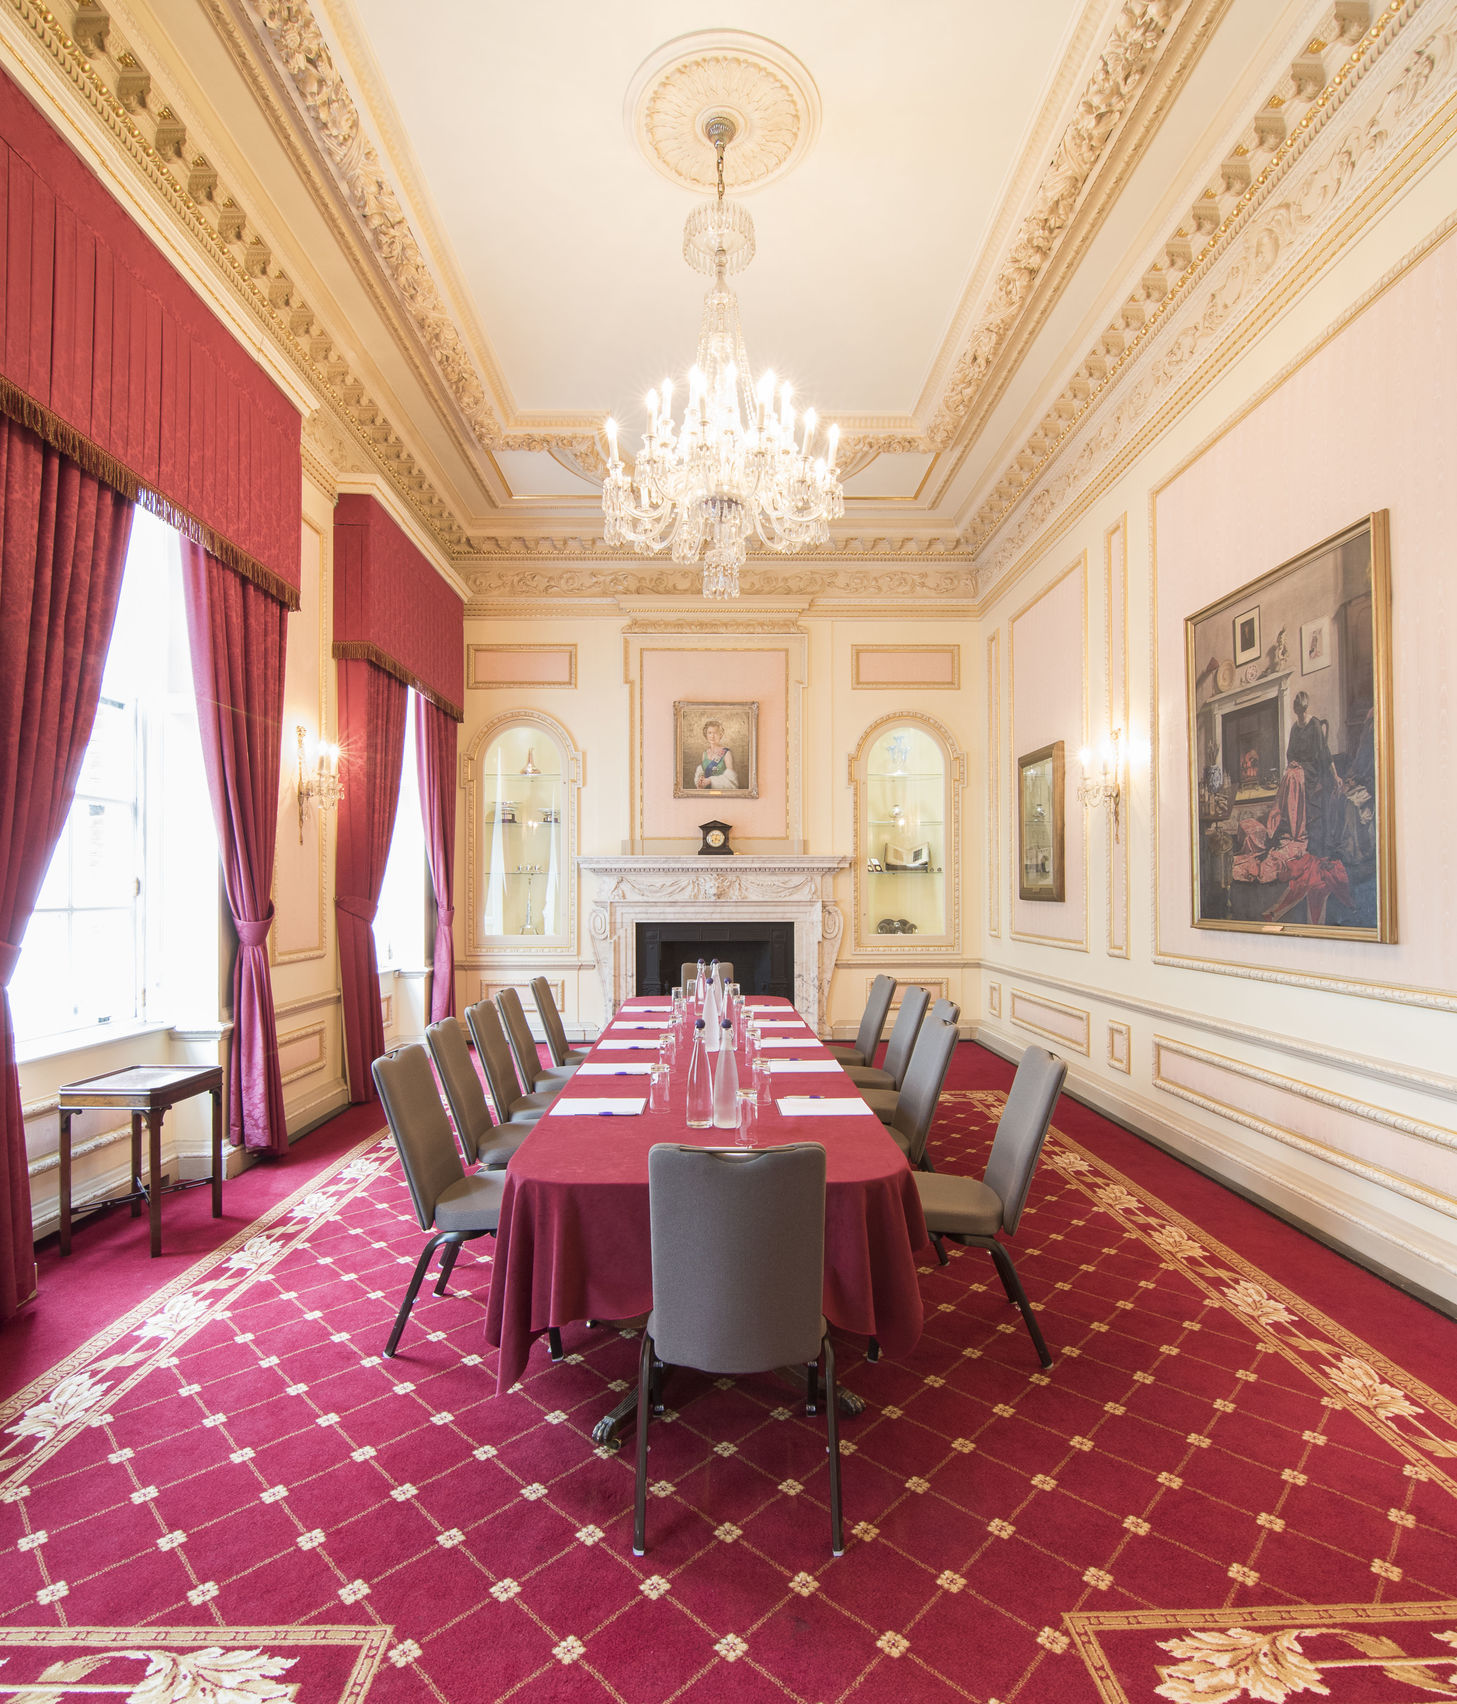 The Selkirk Room, The Caledonian Club